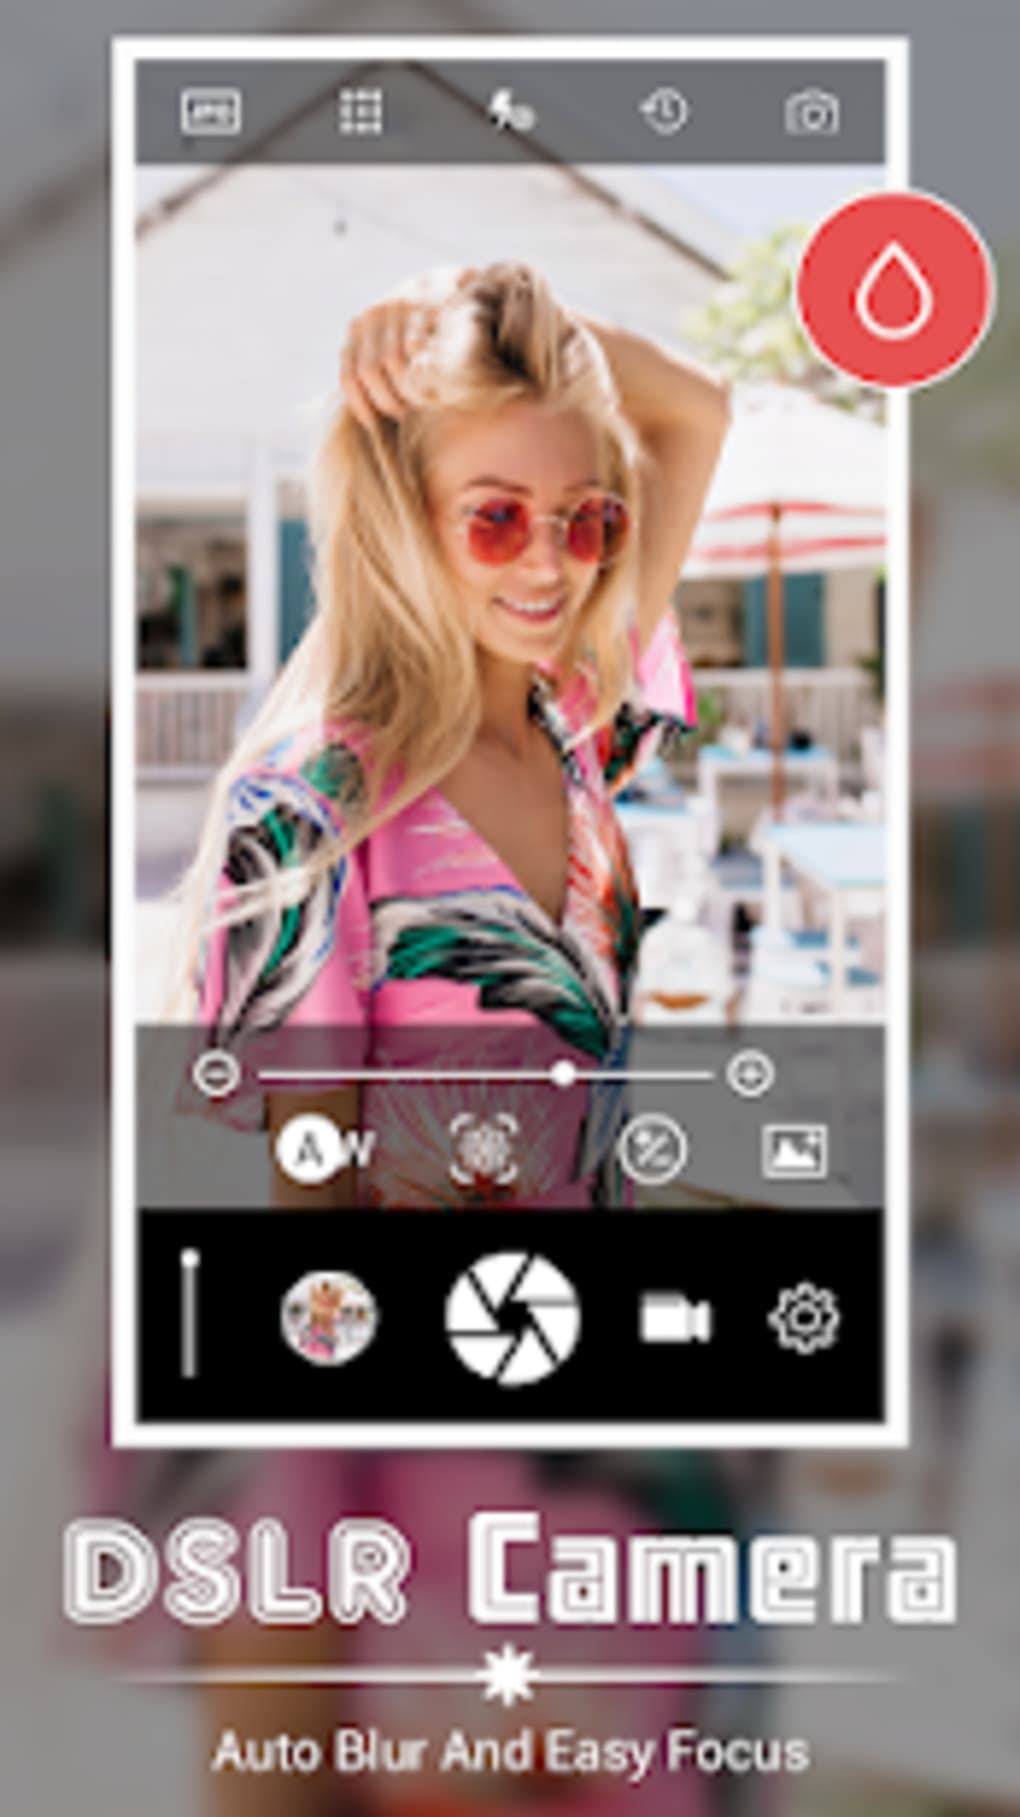 HD DSLR Camera - Ultra 4K HD Zoom Camera for Android - Download